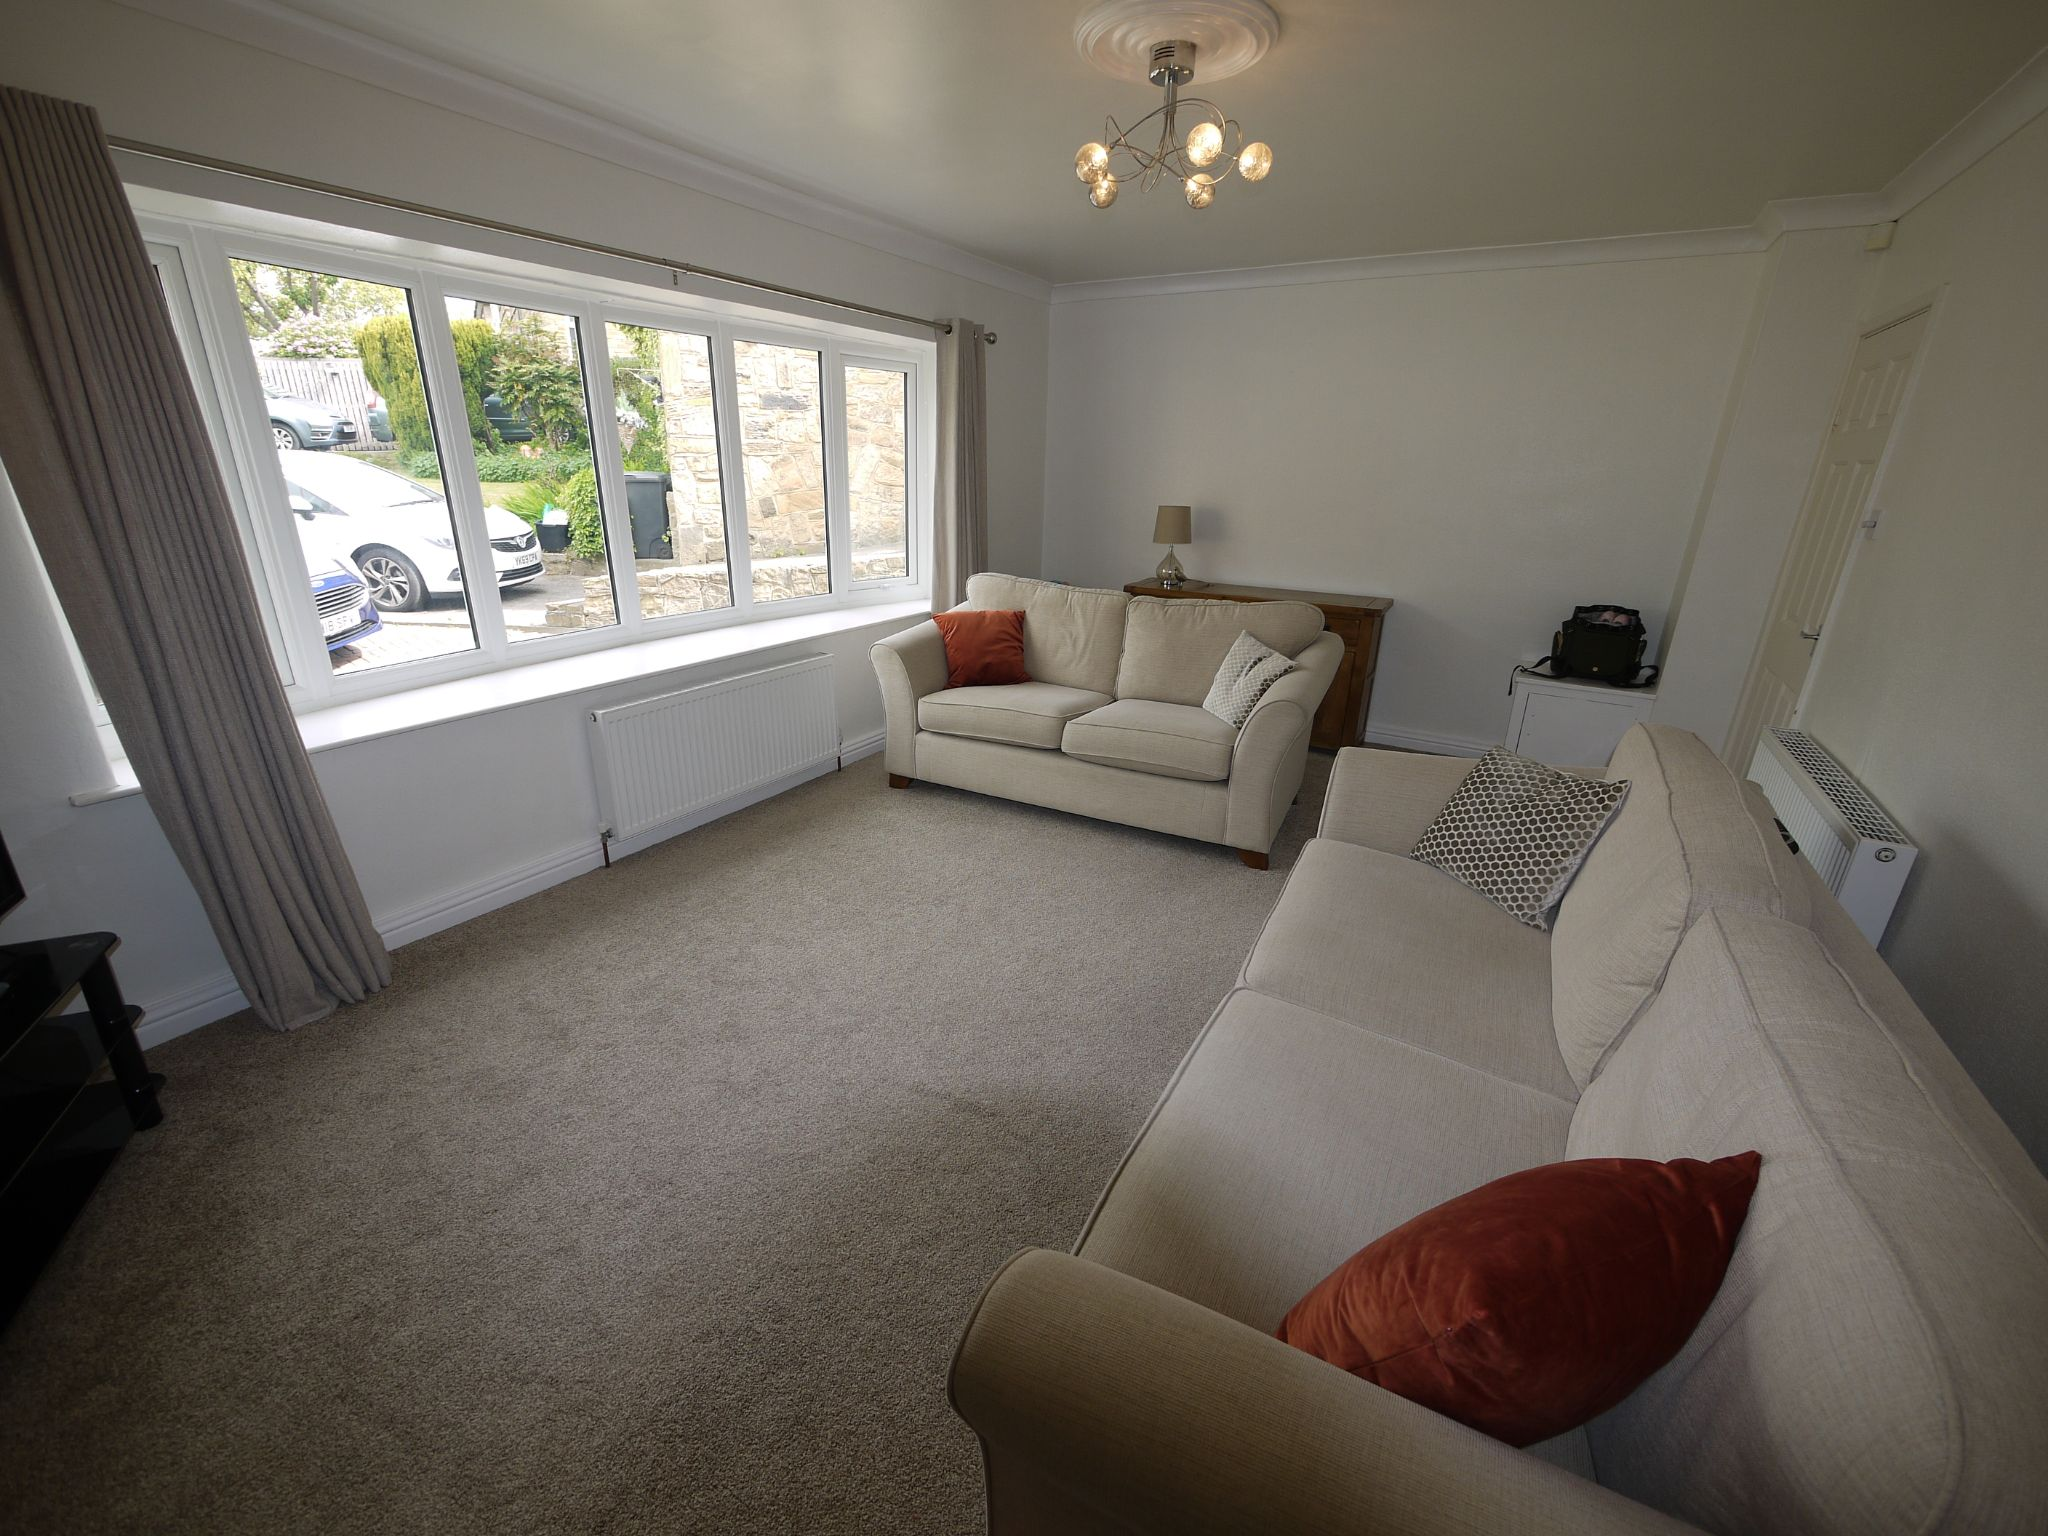 4 bedroom semi-detached house For Sale in Brighouse - Lounge 2.